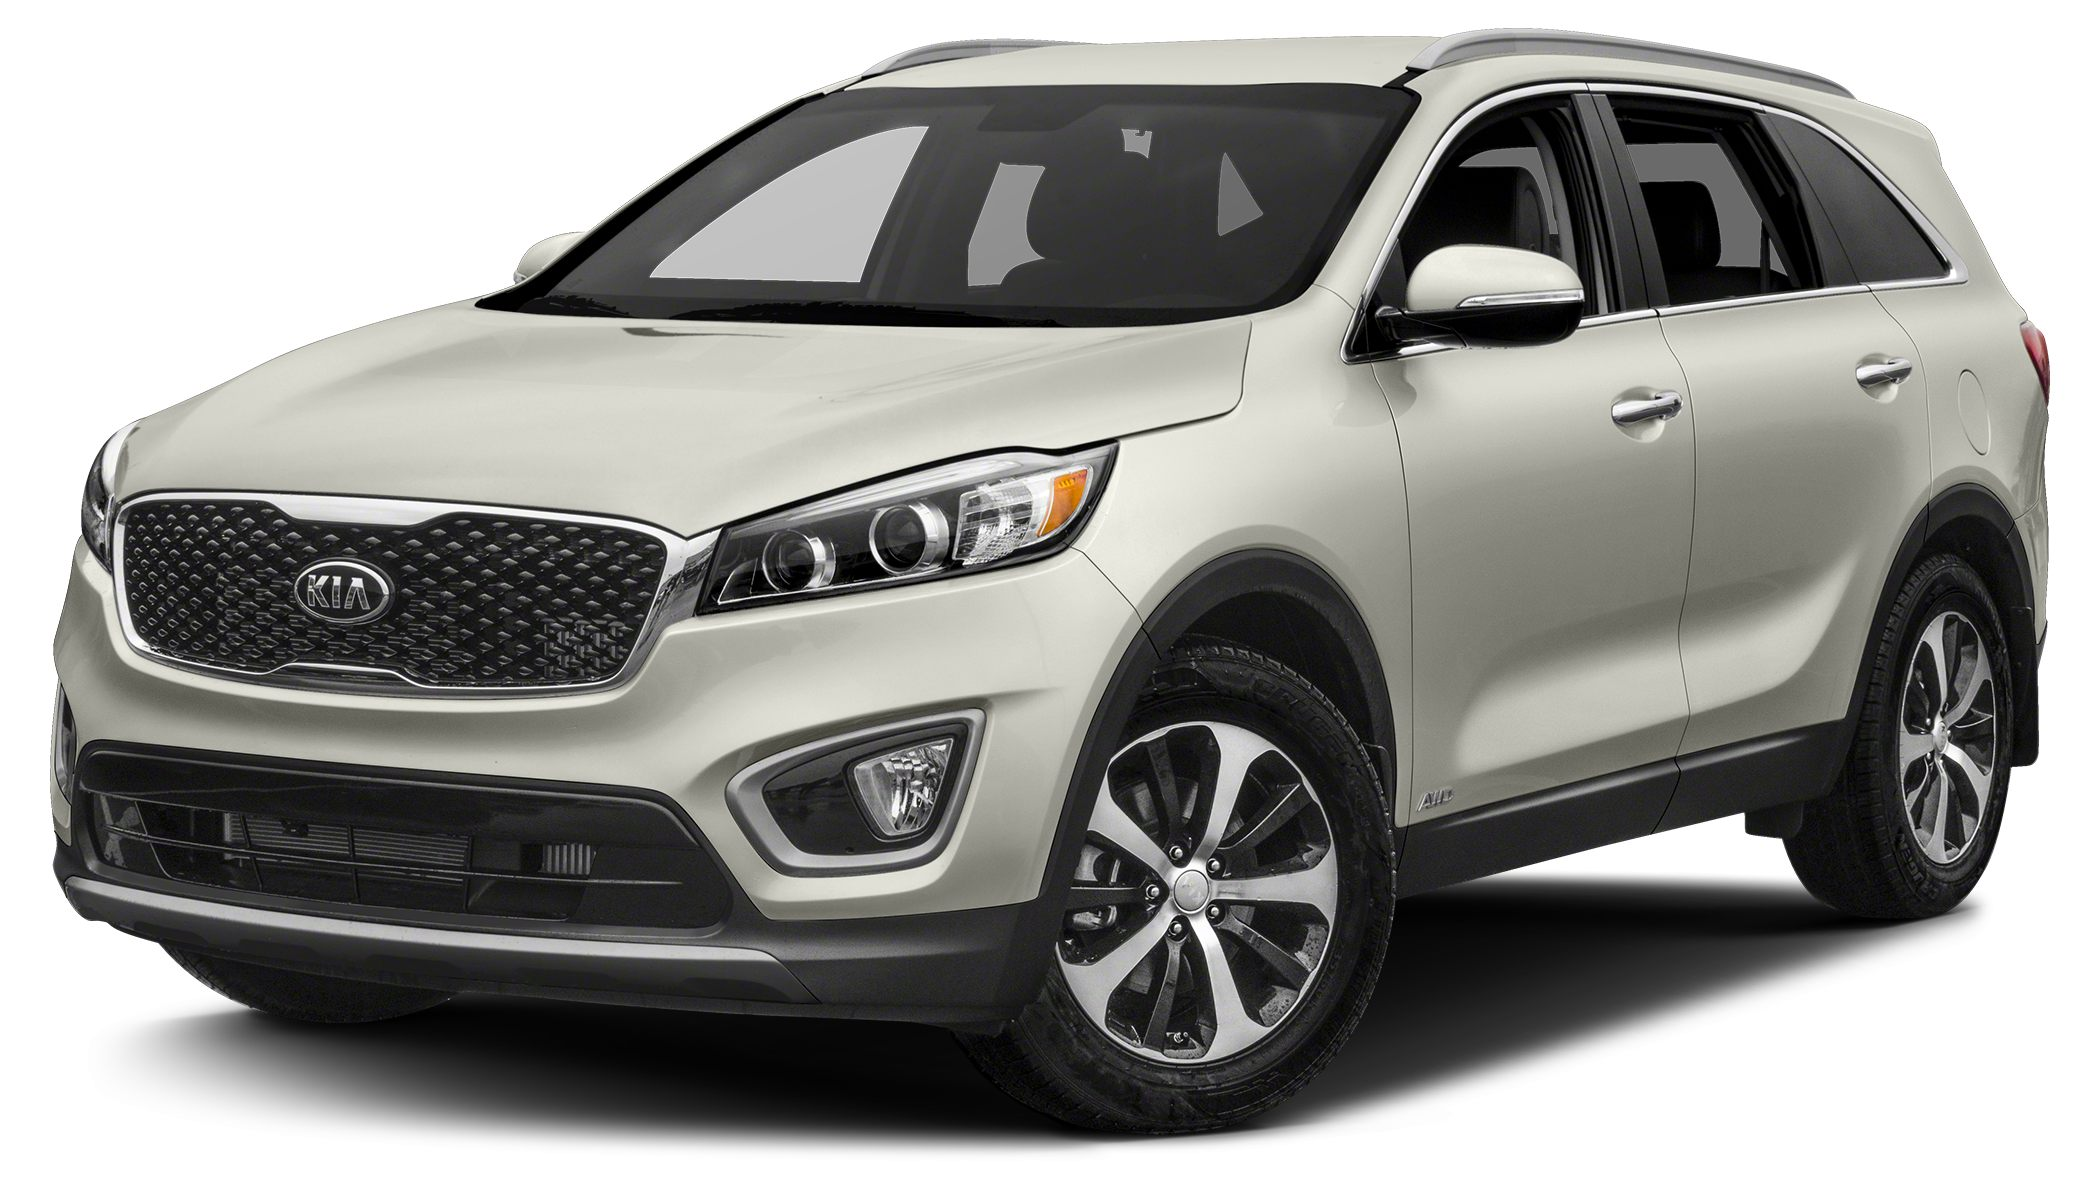 2018 Kia Sorento 33 EX The 2018 Sorento is the most refined yet Designed with smooth sinuous li